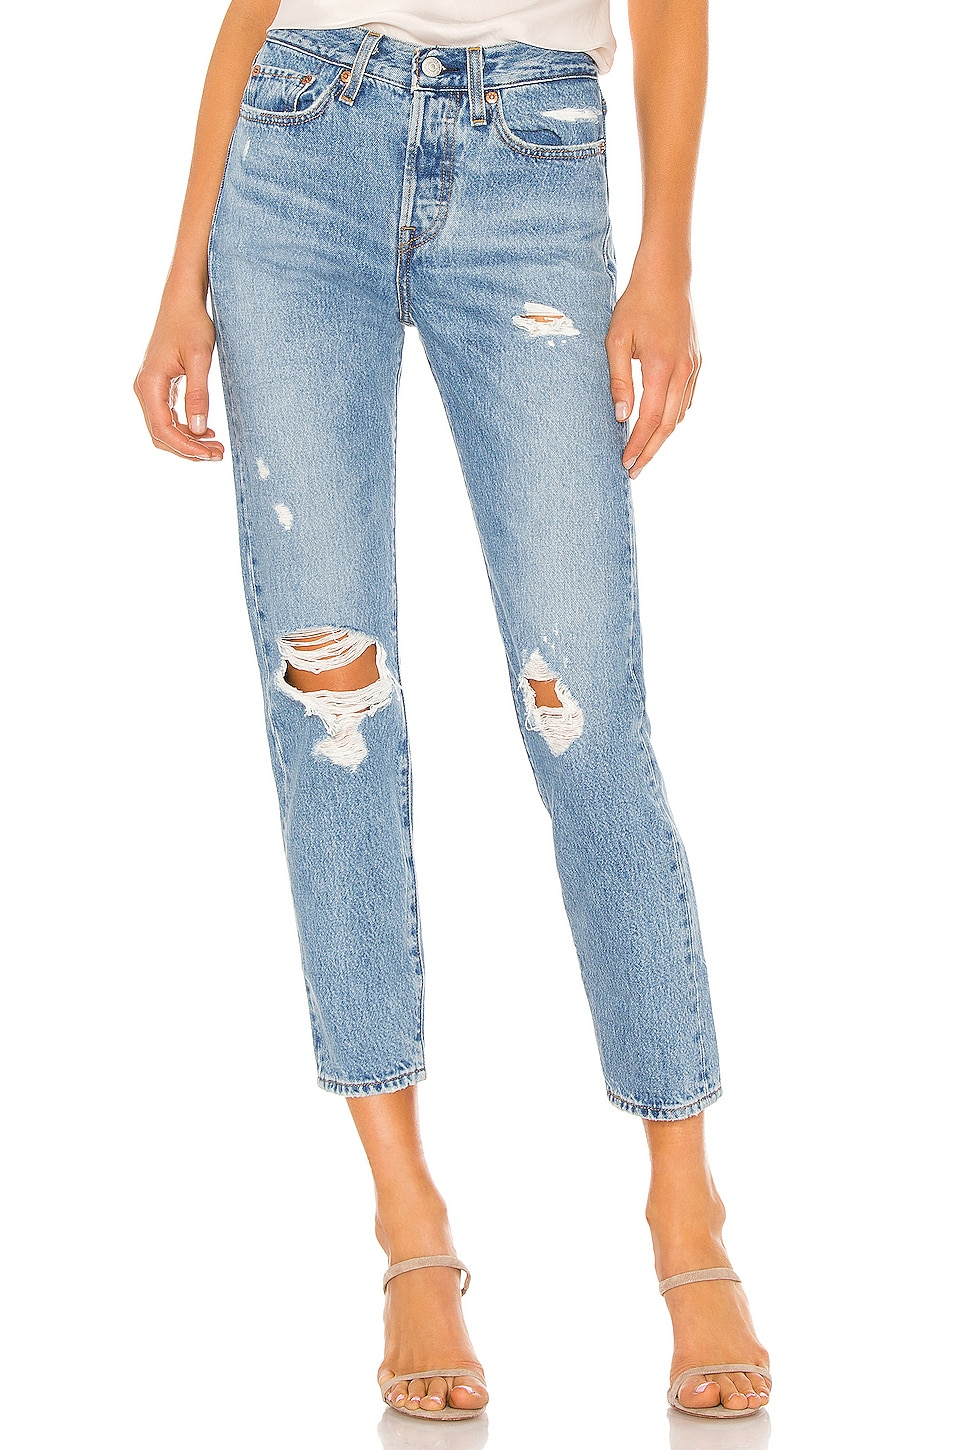 Wedgie Icon Fit                     LEVI'S 6